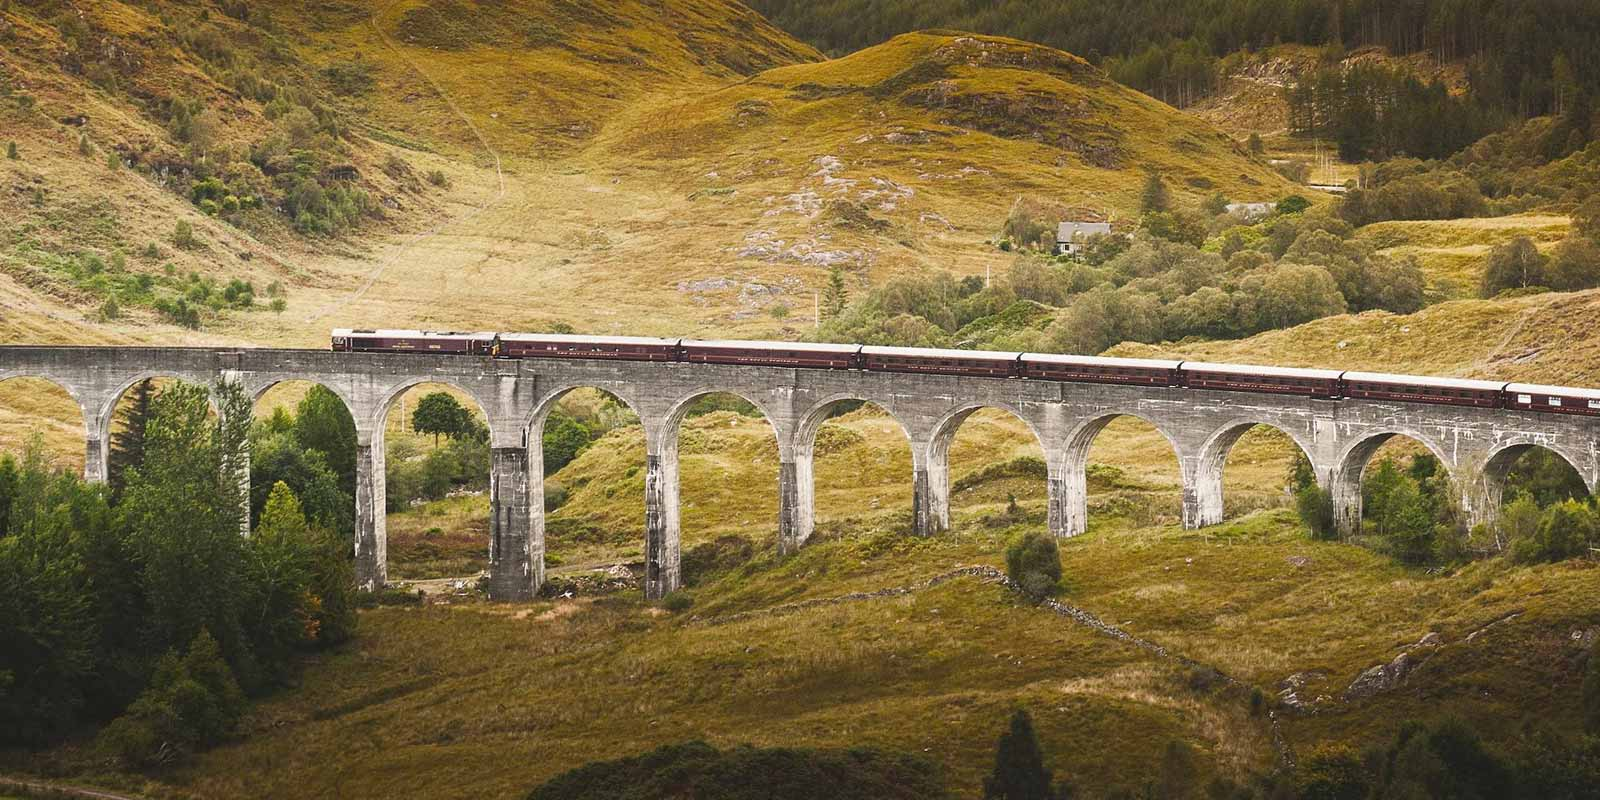 News: a luxury train with whisky tastings and castle tours